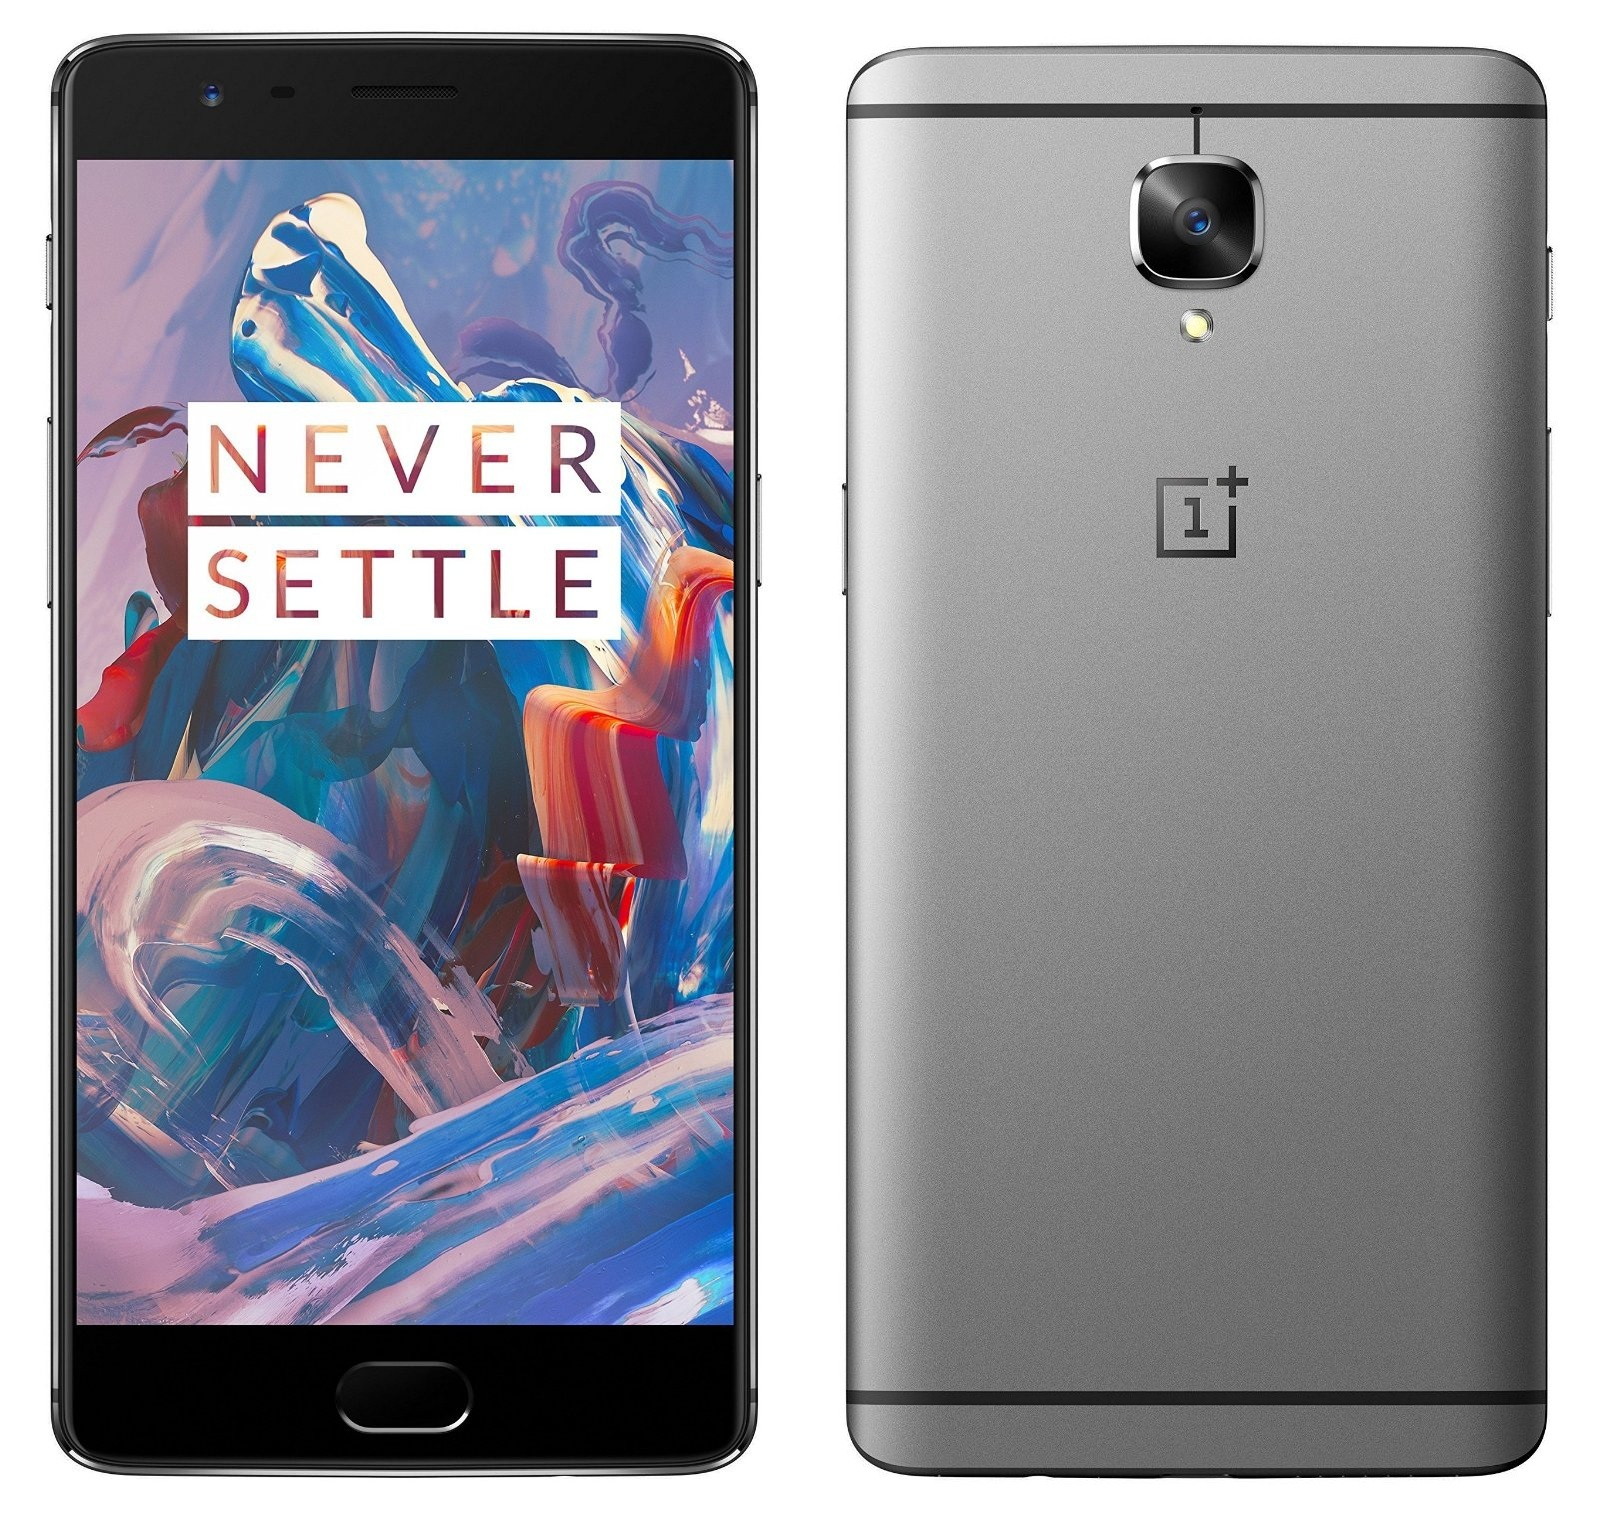 OnePlus 3 Smartphone | Best Lowest Price In India 2016